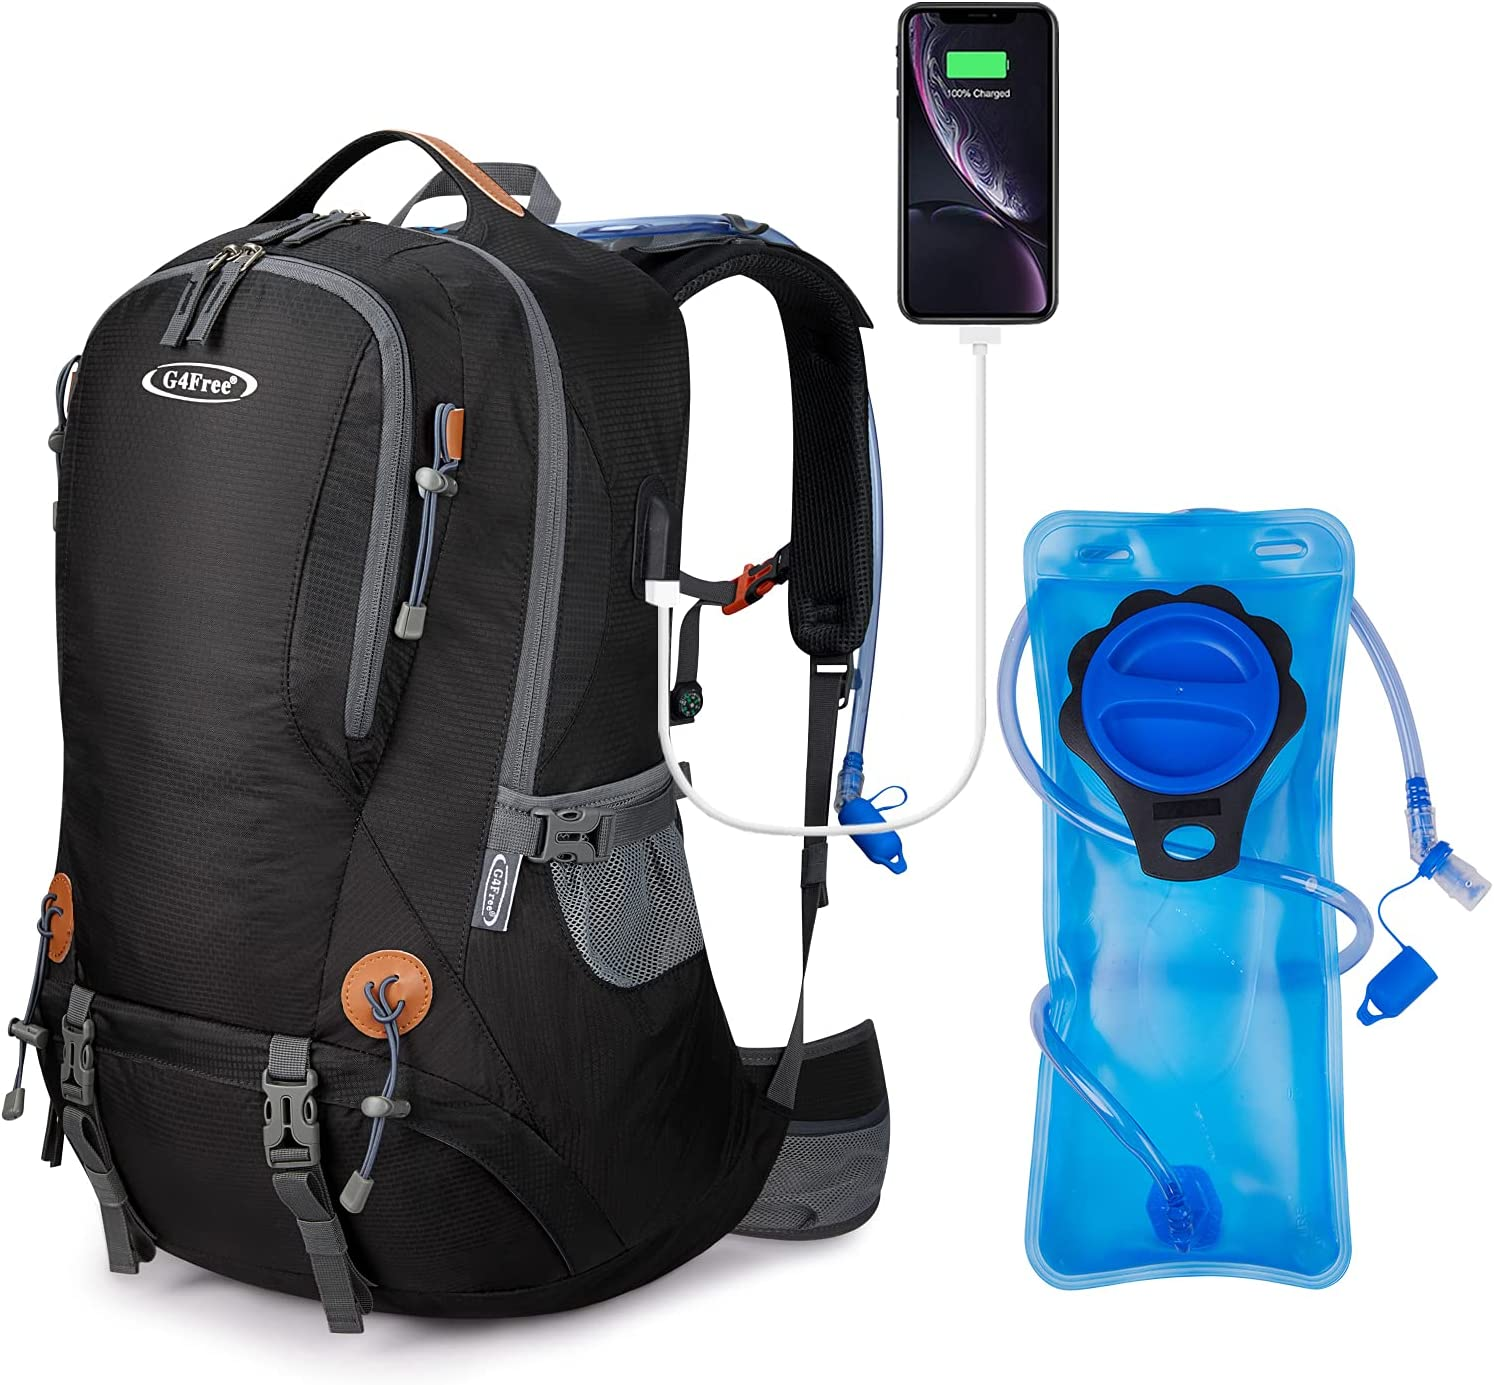 G4Free 50L Max 62% OFF Hiking Backpack Waterproof Daypack 2L with Selling BPA B Free